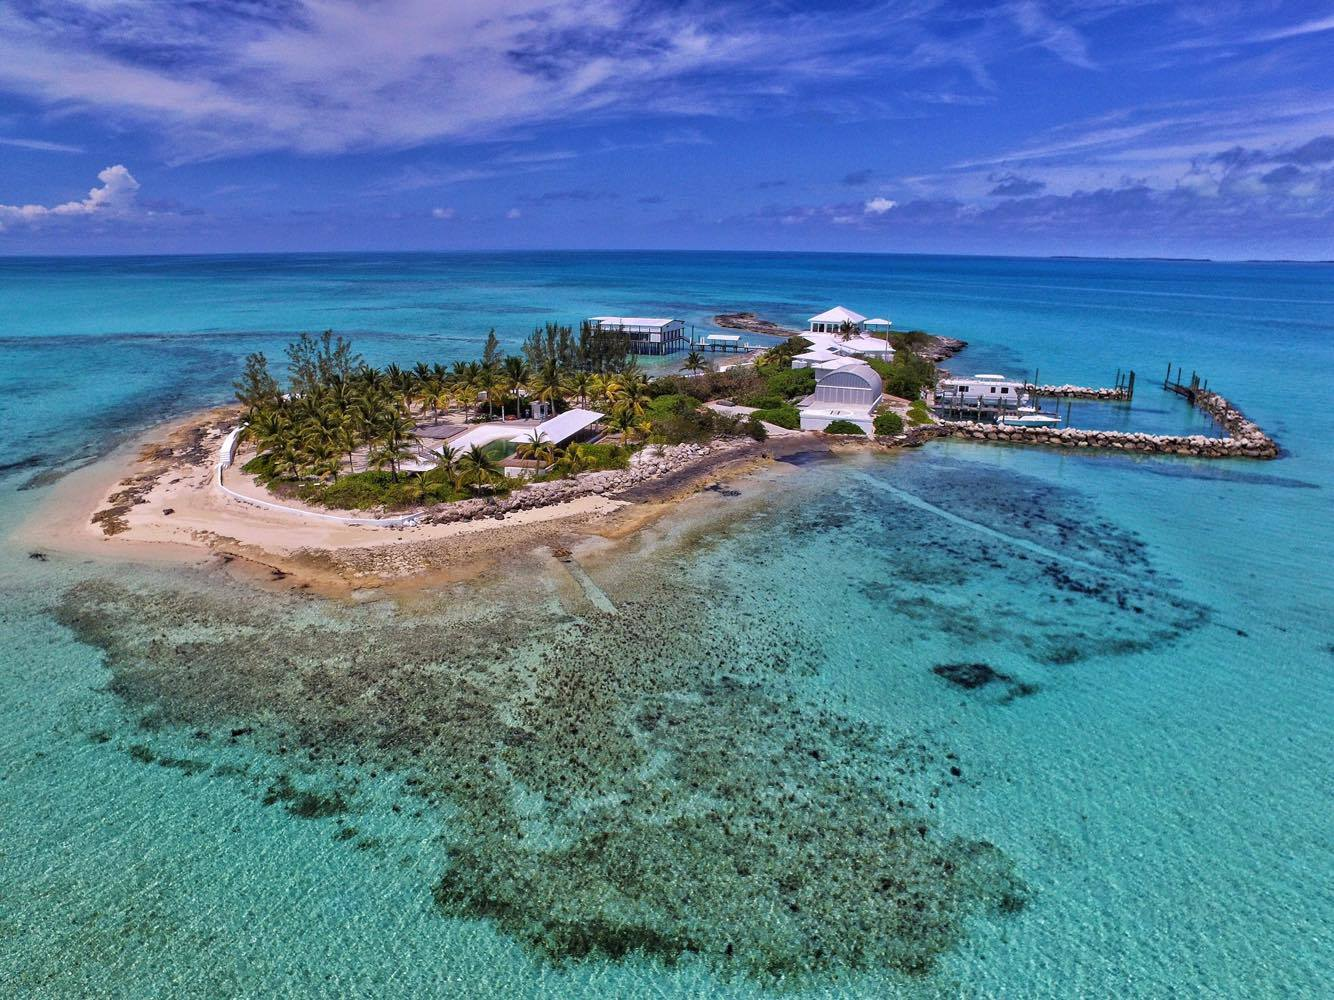 Îlle privée pour l Vente à Private Island North Eleuthera - Exclusive - Unique - Exciting Commercial Possibilities! Eleuthera, Bahamas